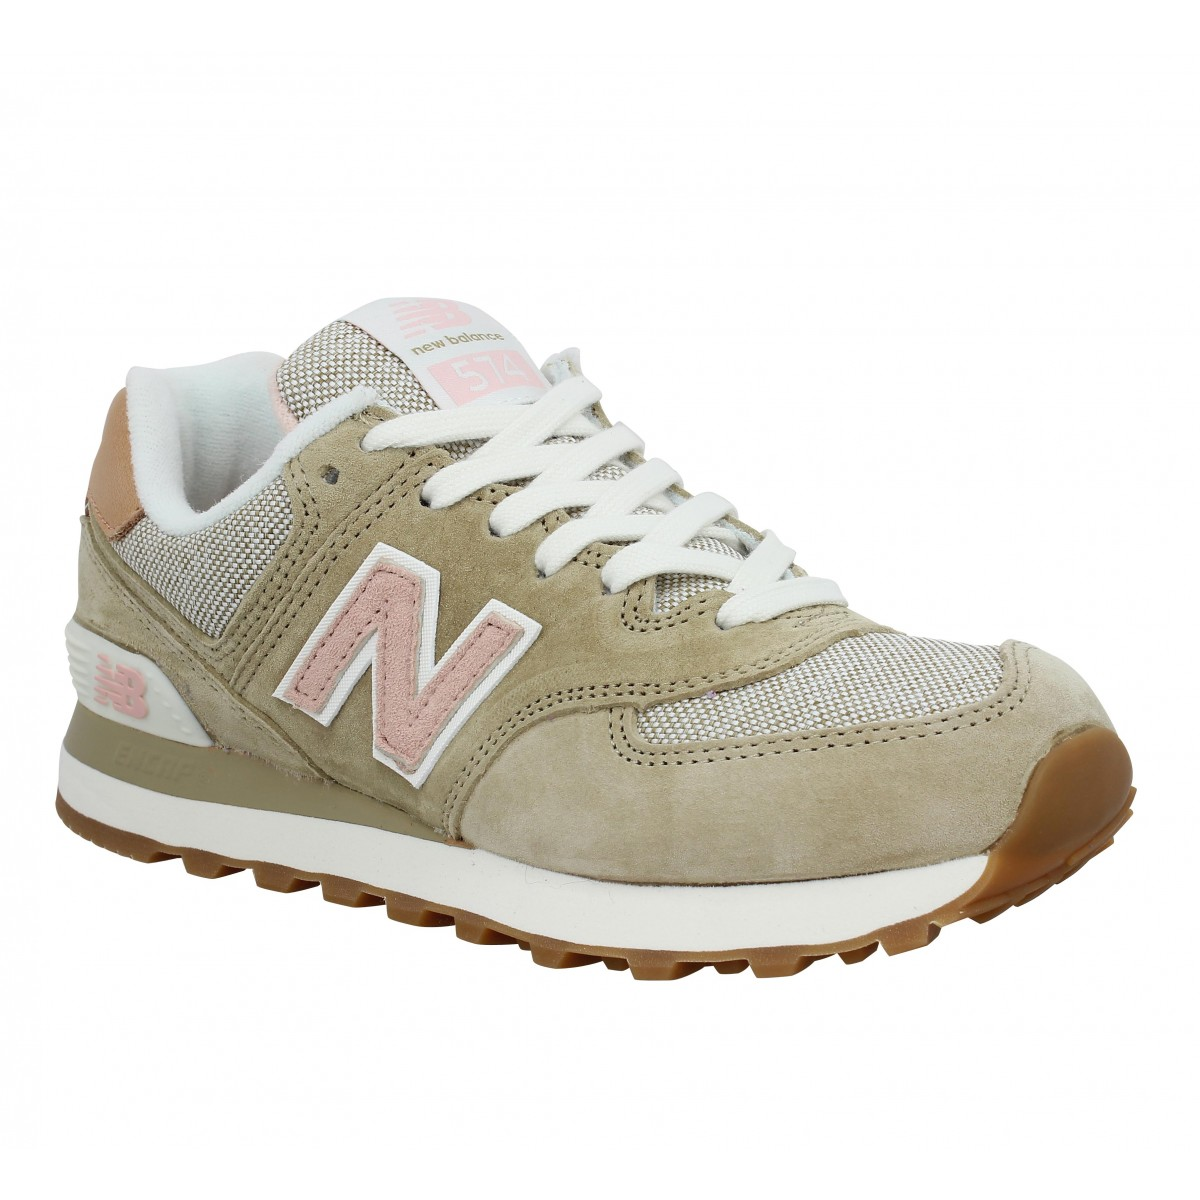 Baskets NEW BALANCE 574 velours + toile Femme Beige